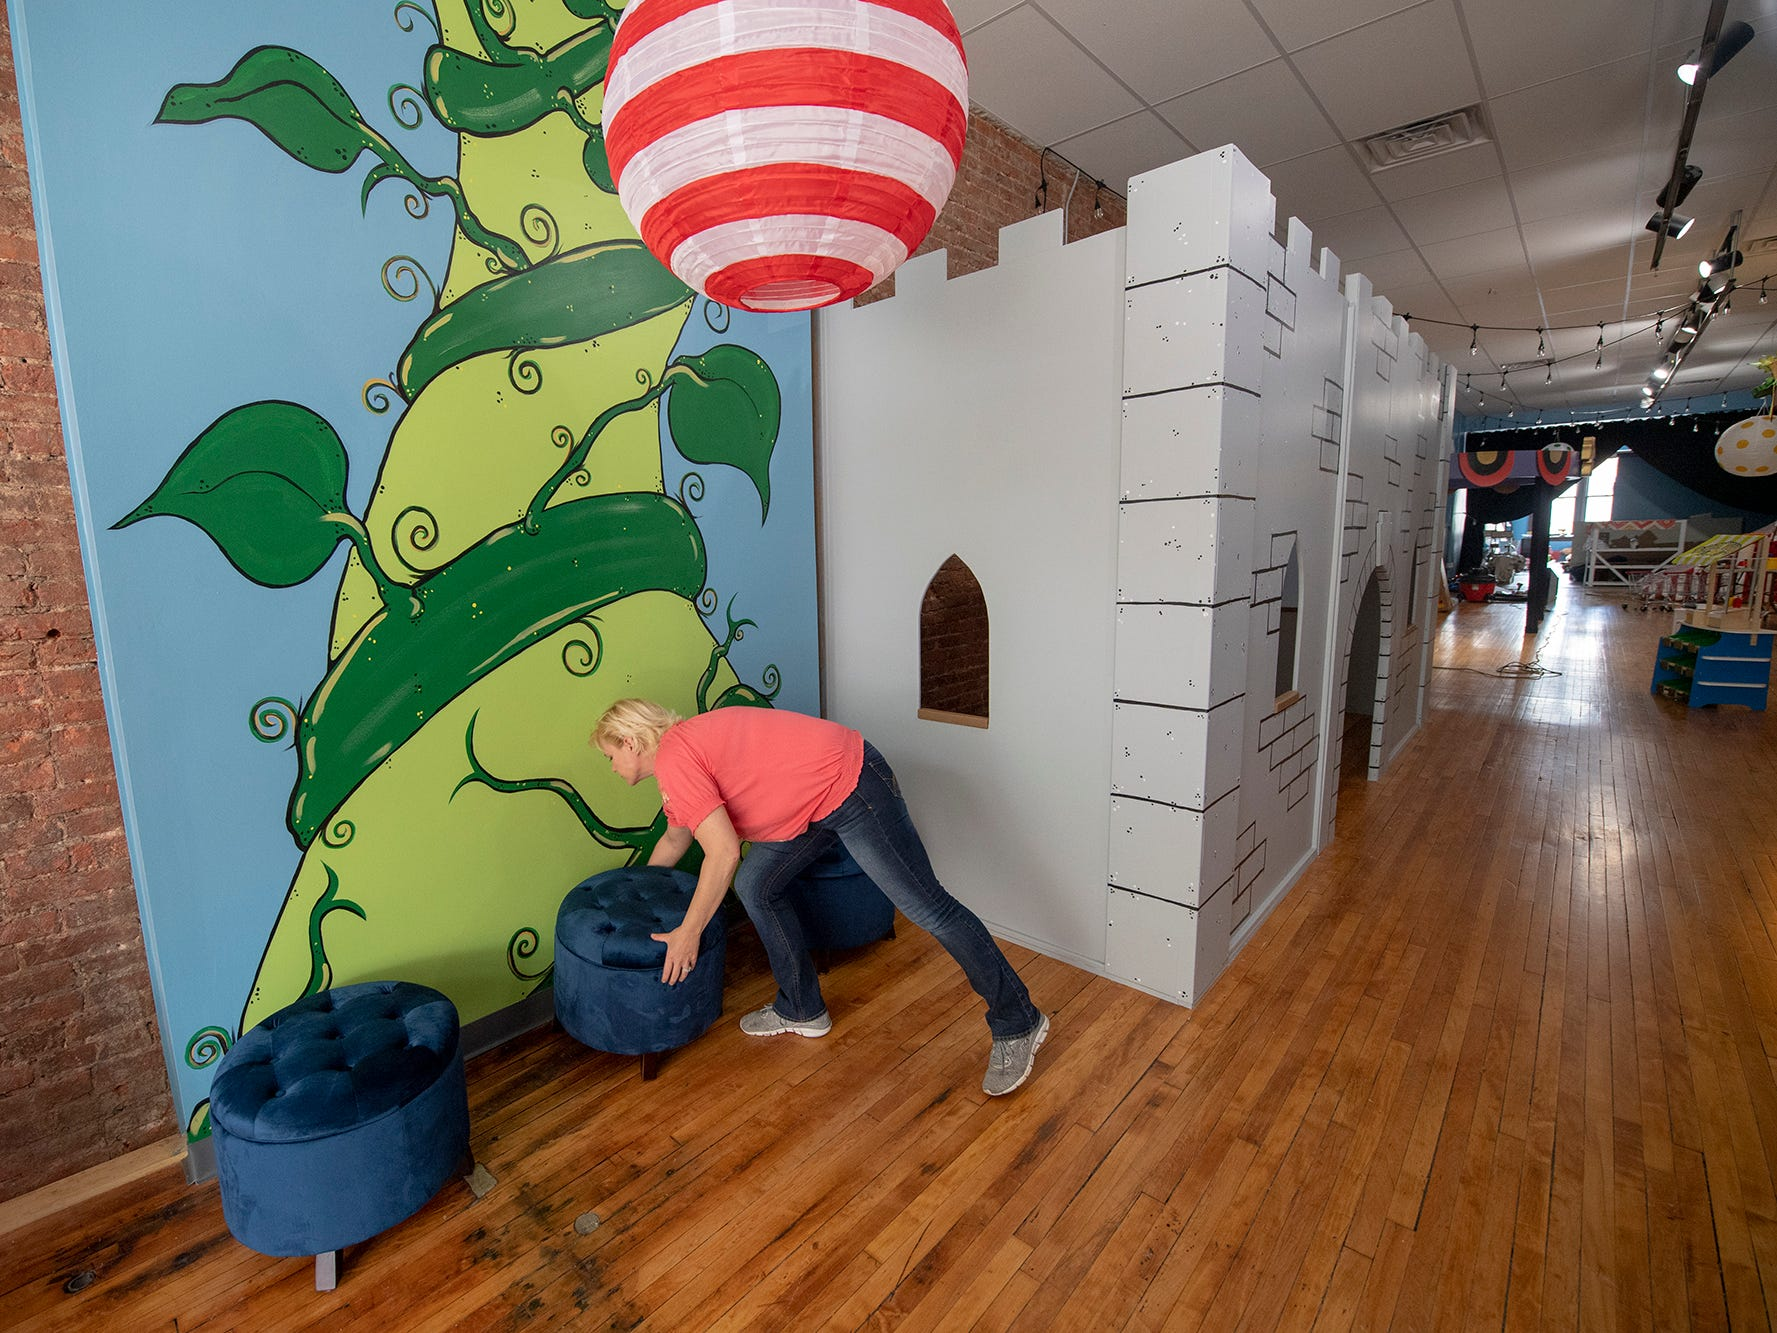 Manager Heidi Wildasin arranges seats at the base of the beanstalk at The Curious Little Playhouse, located at 41 W. Market St. in York.